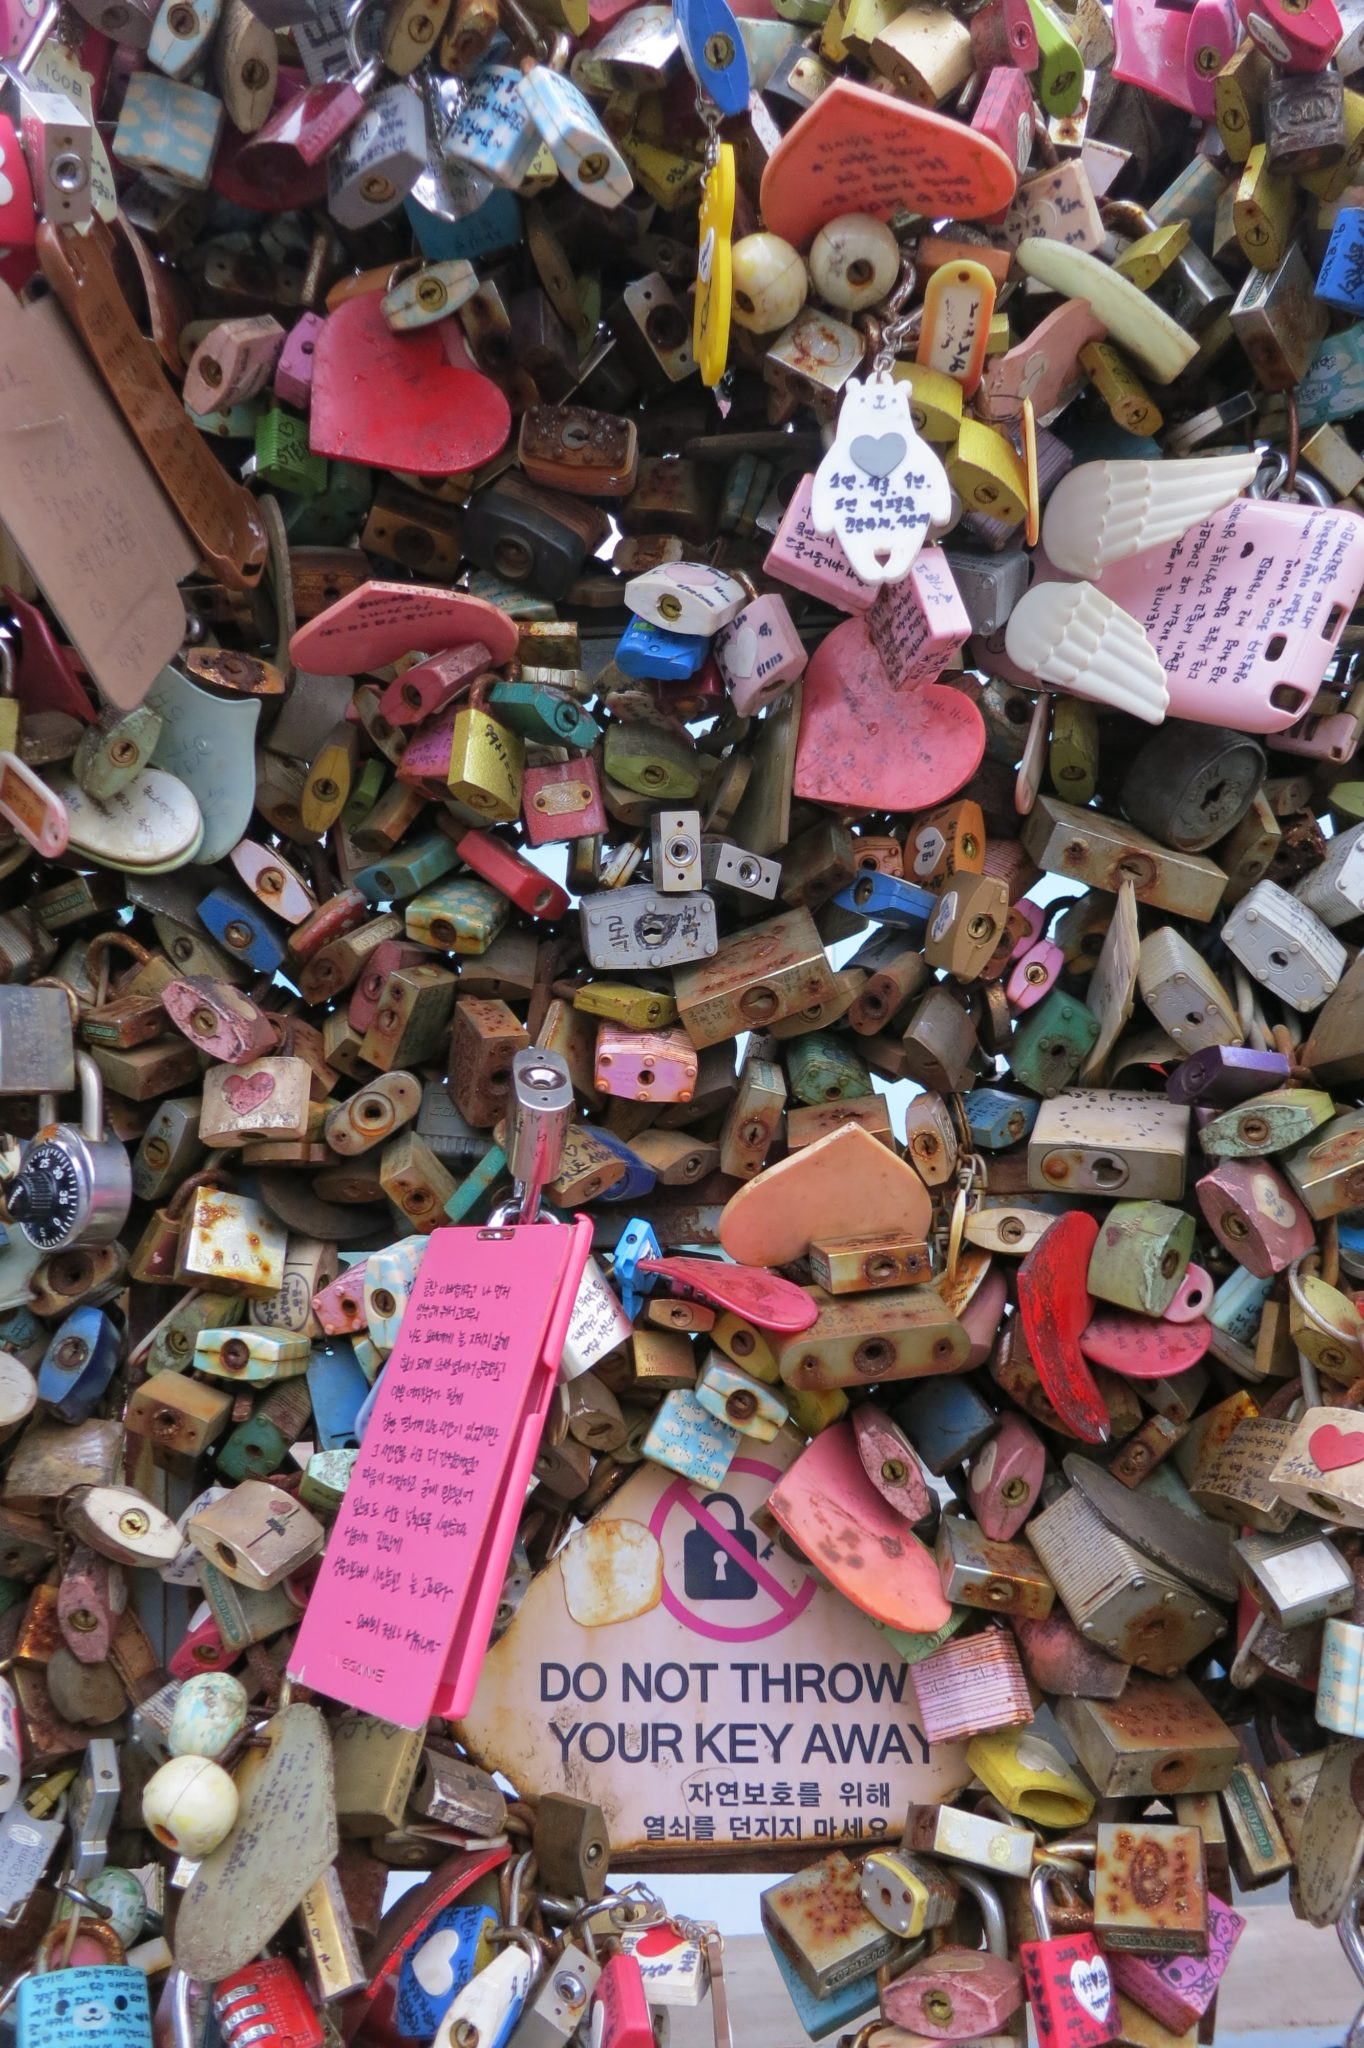 Seoul love locks